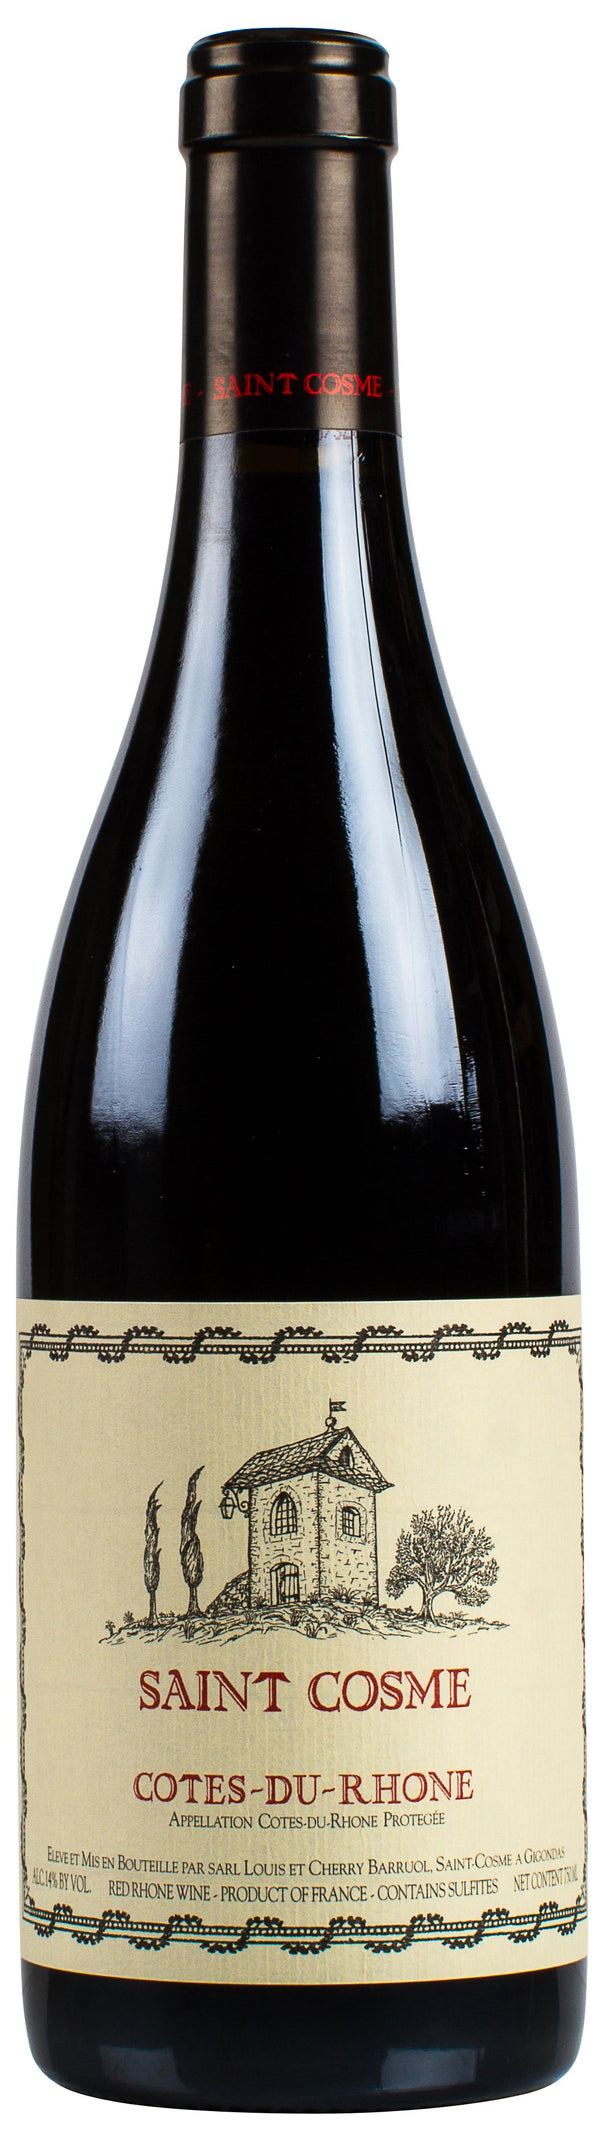 Saint Cosme Cotes-Du-Rhone Red 2018 750ml